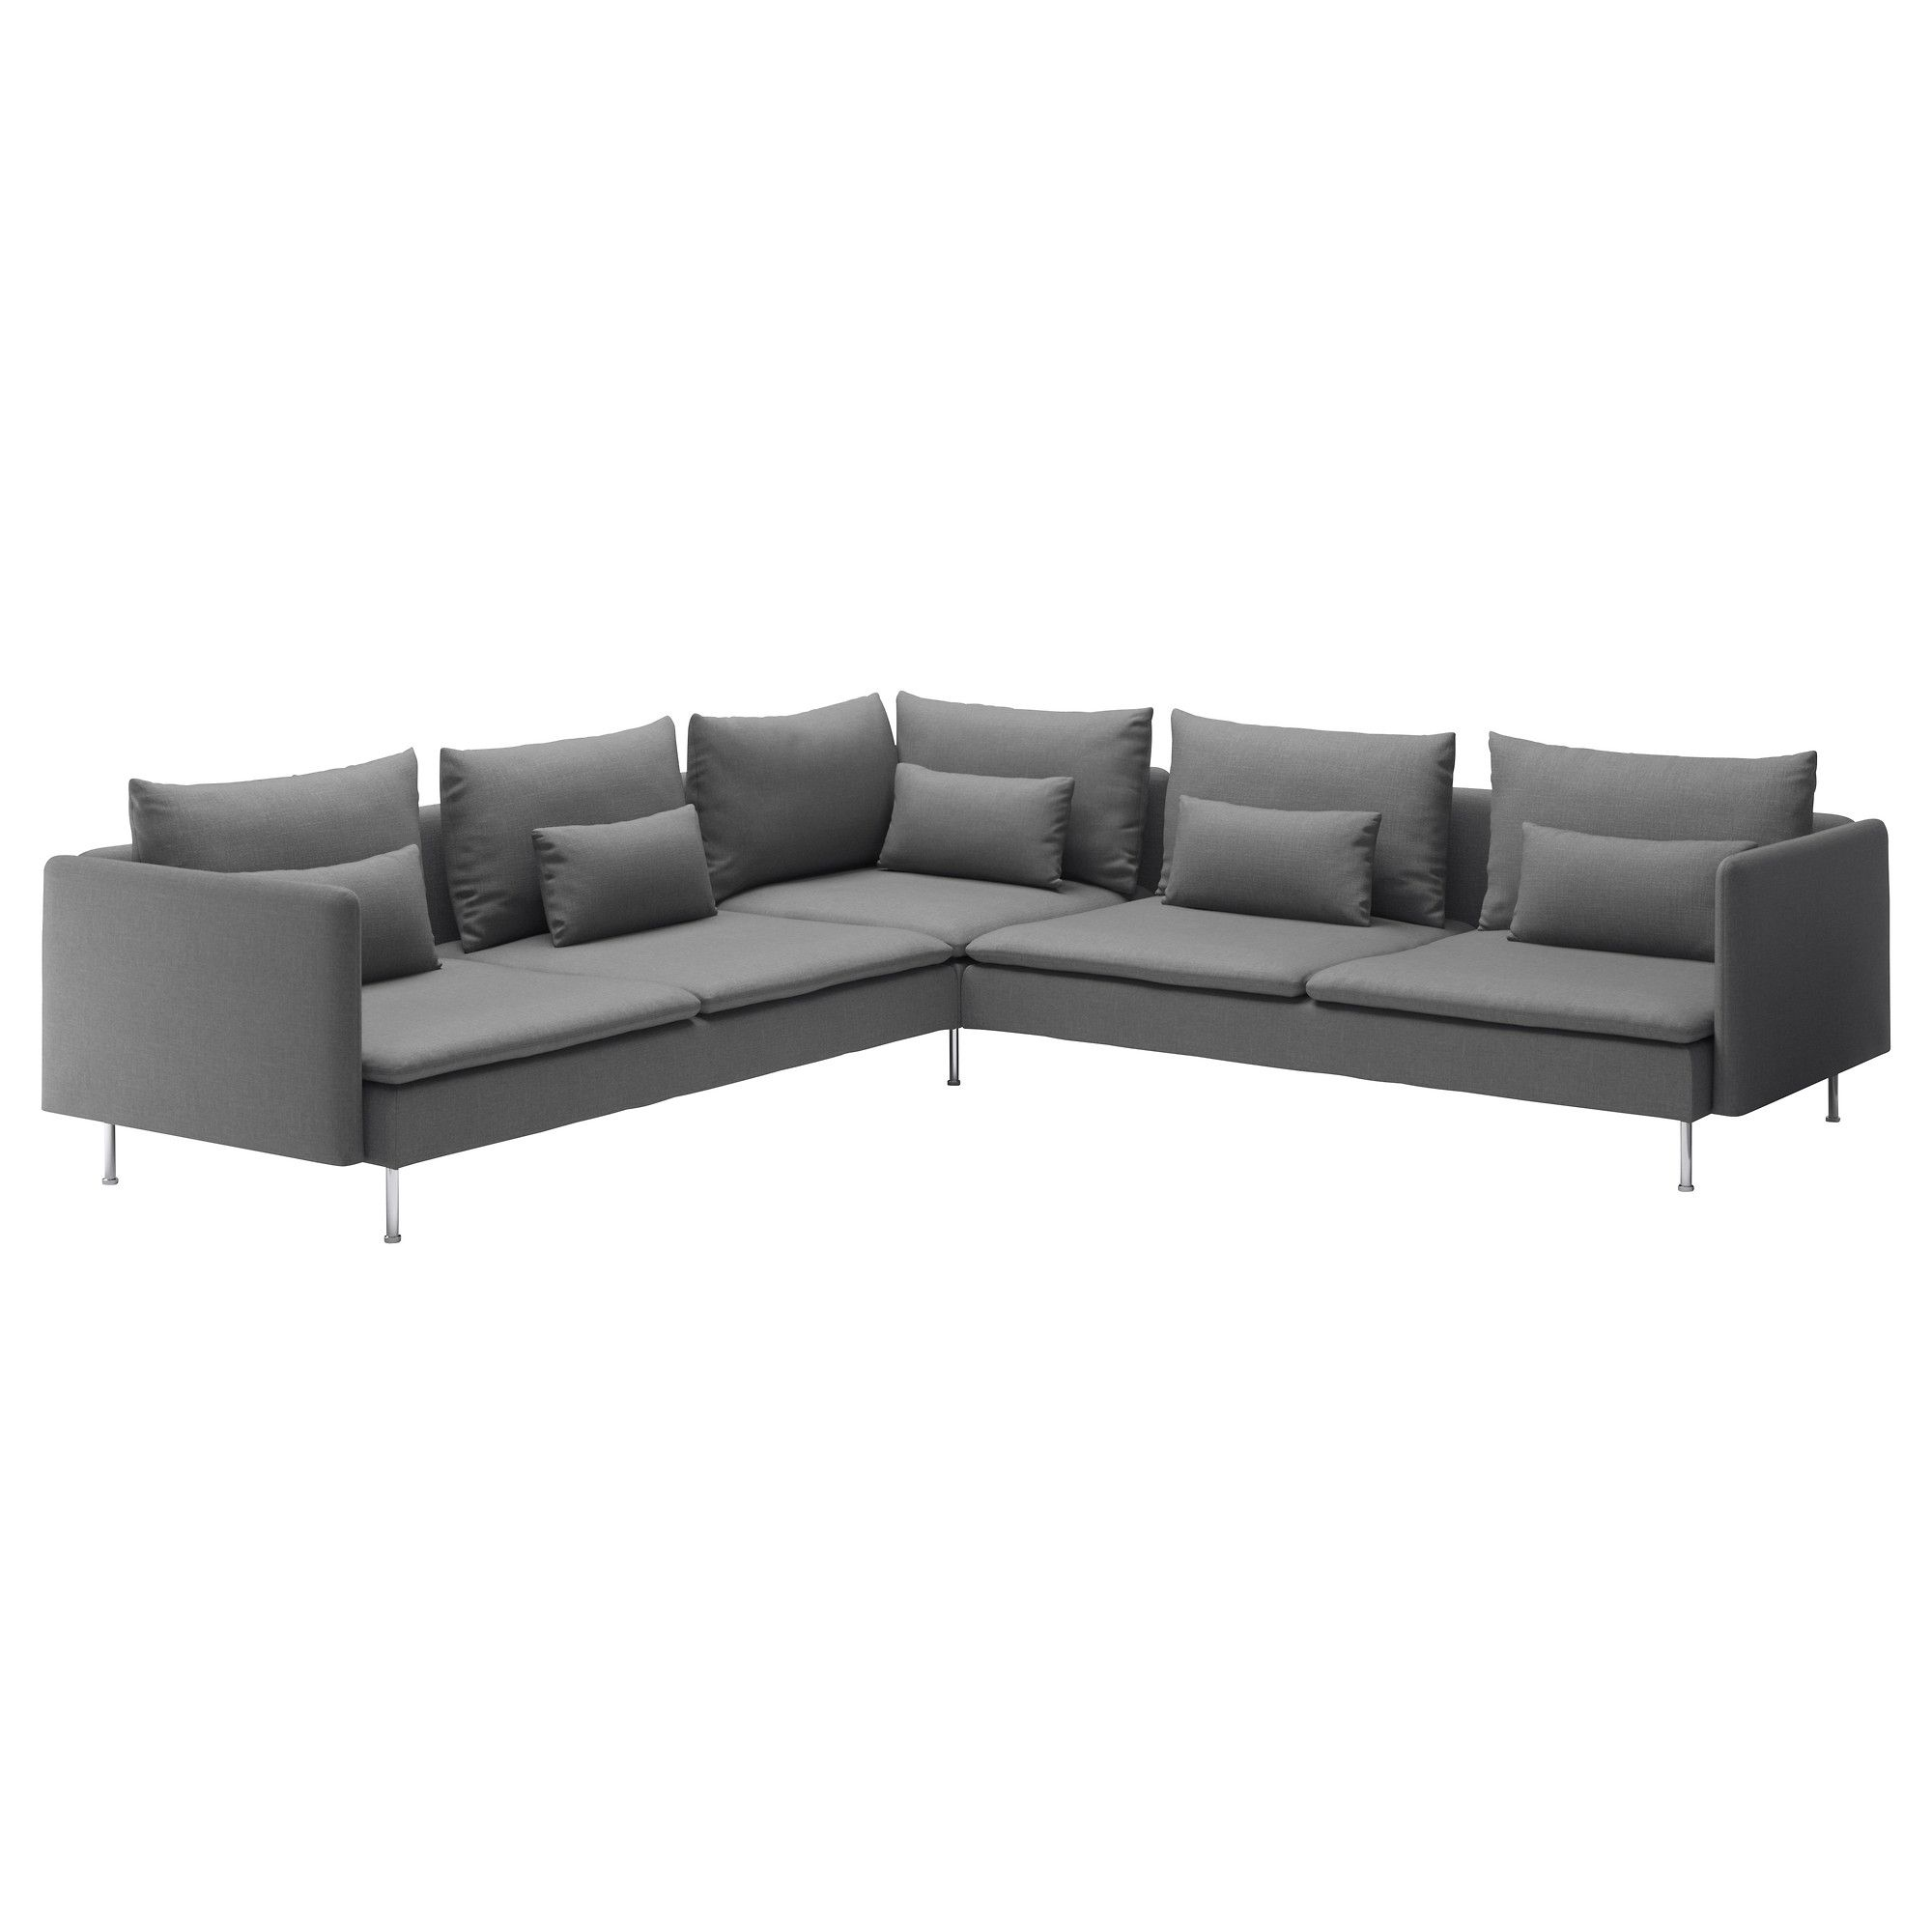 sectional option this is a softer gray that would work well with